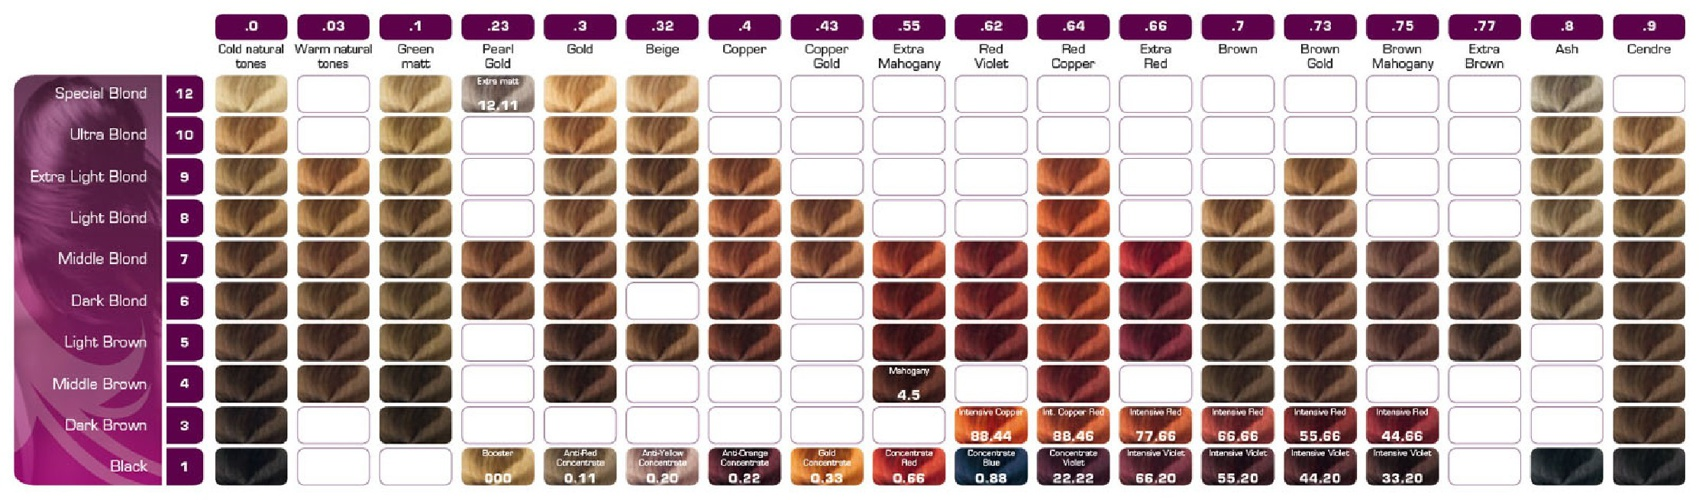 socolor chart: Berrywell color chart by gbrayong flipsnack